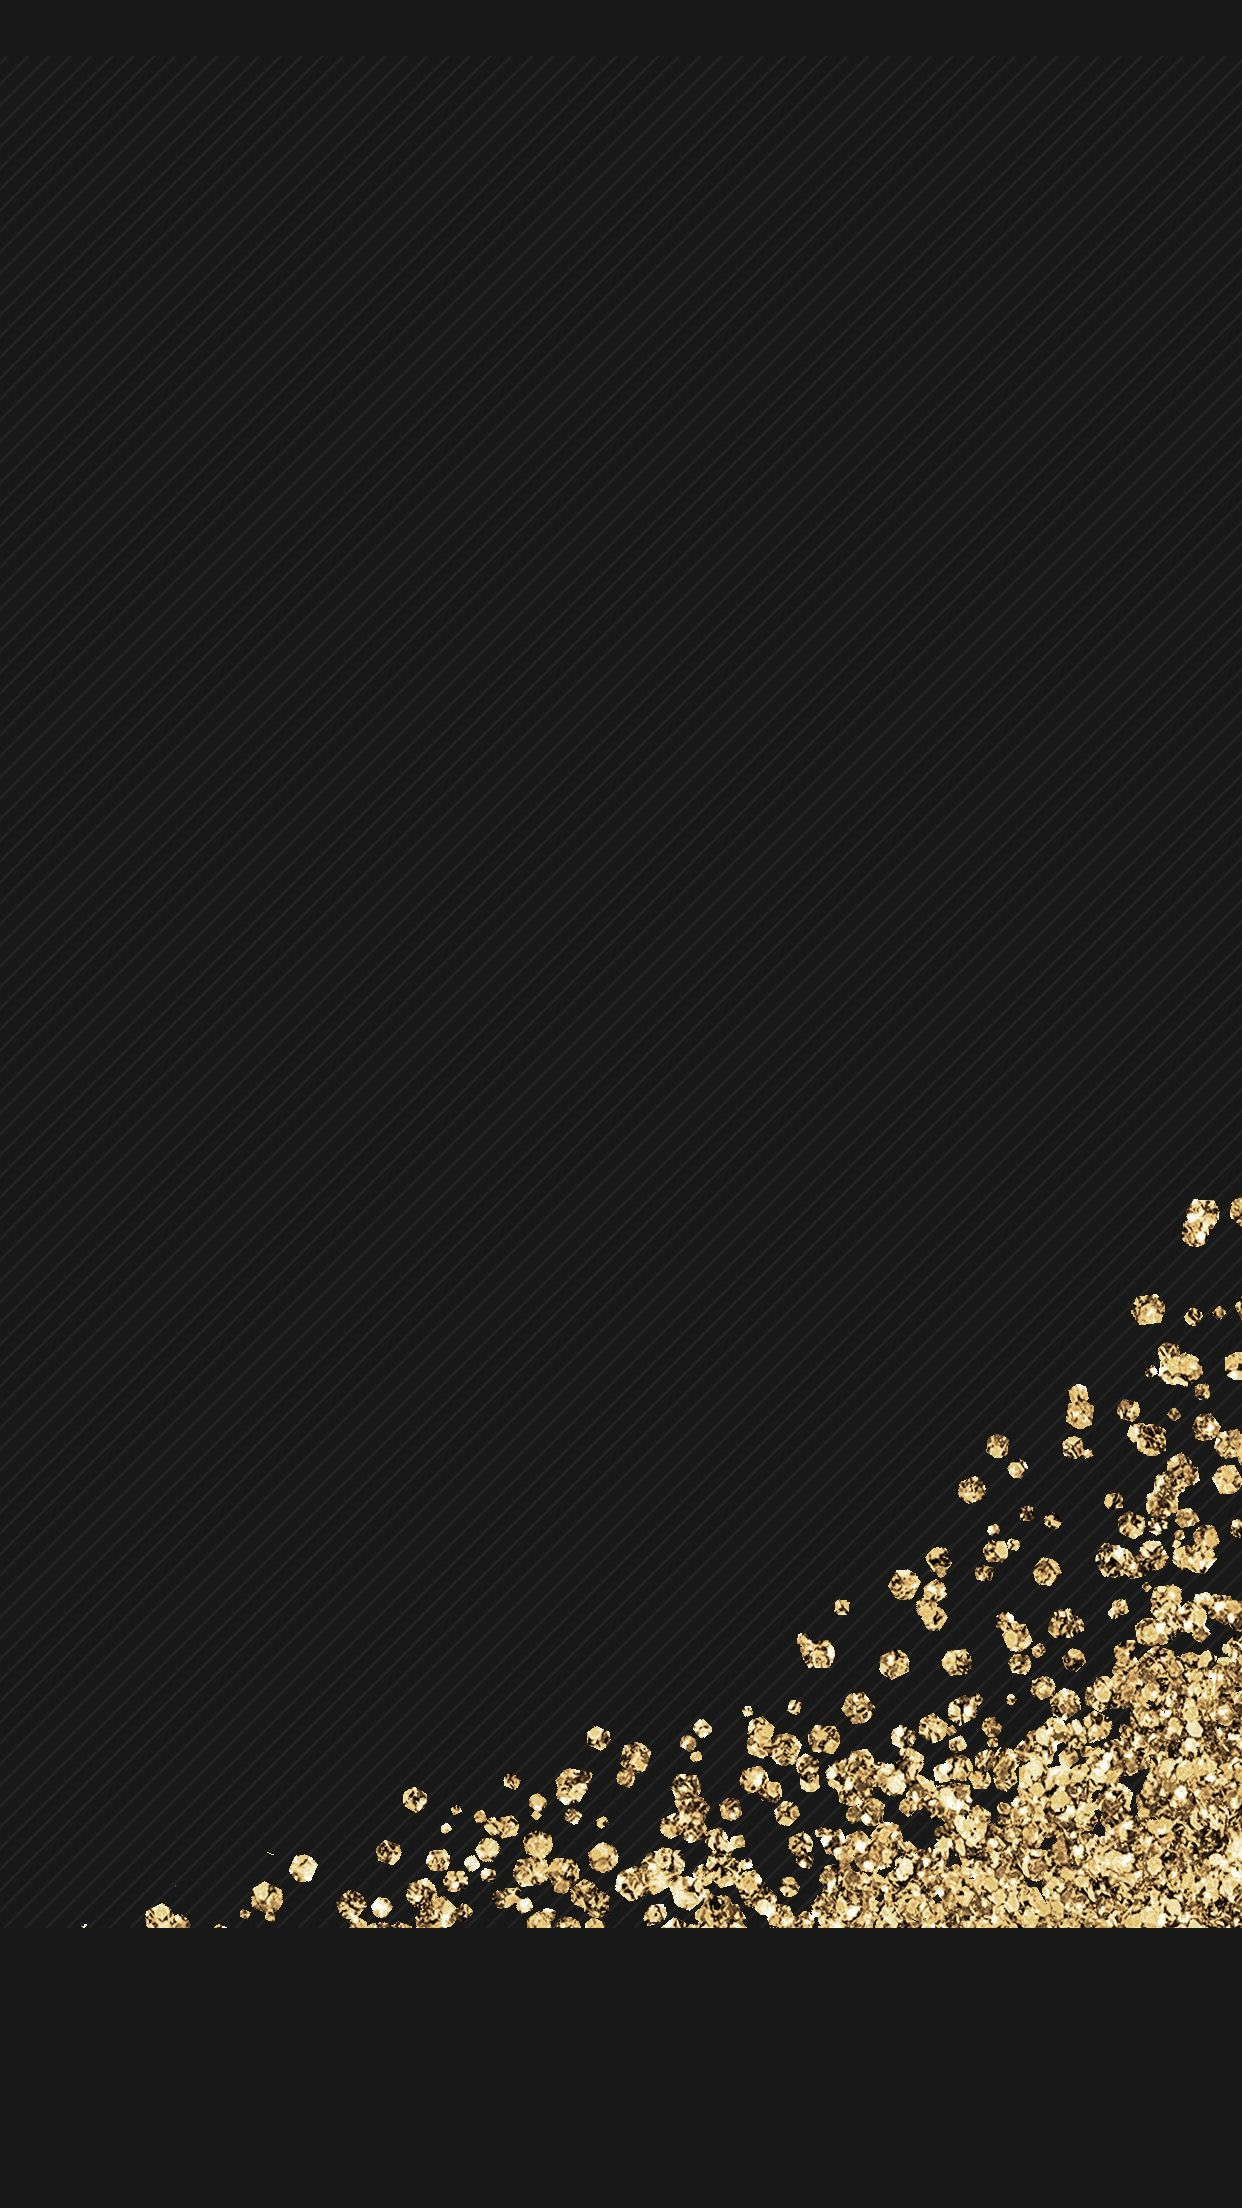 black gold glitter wallpaper background iphone